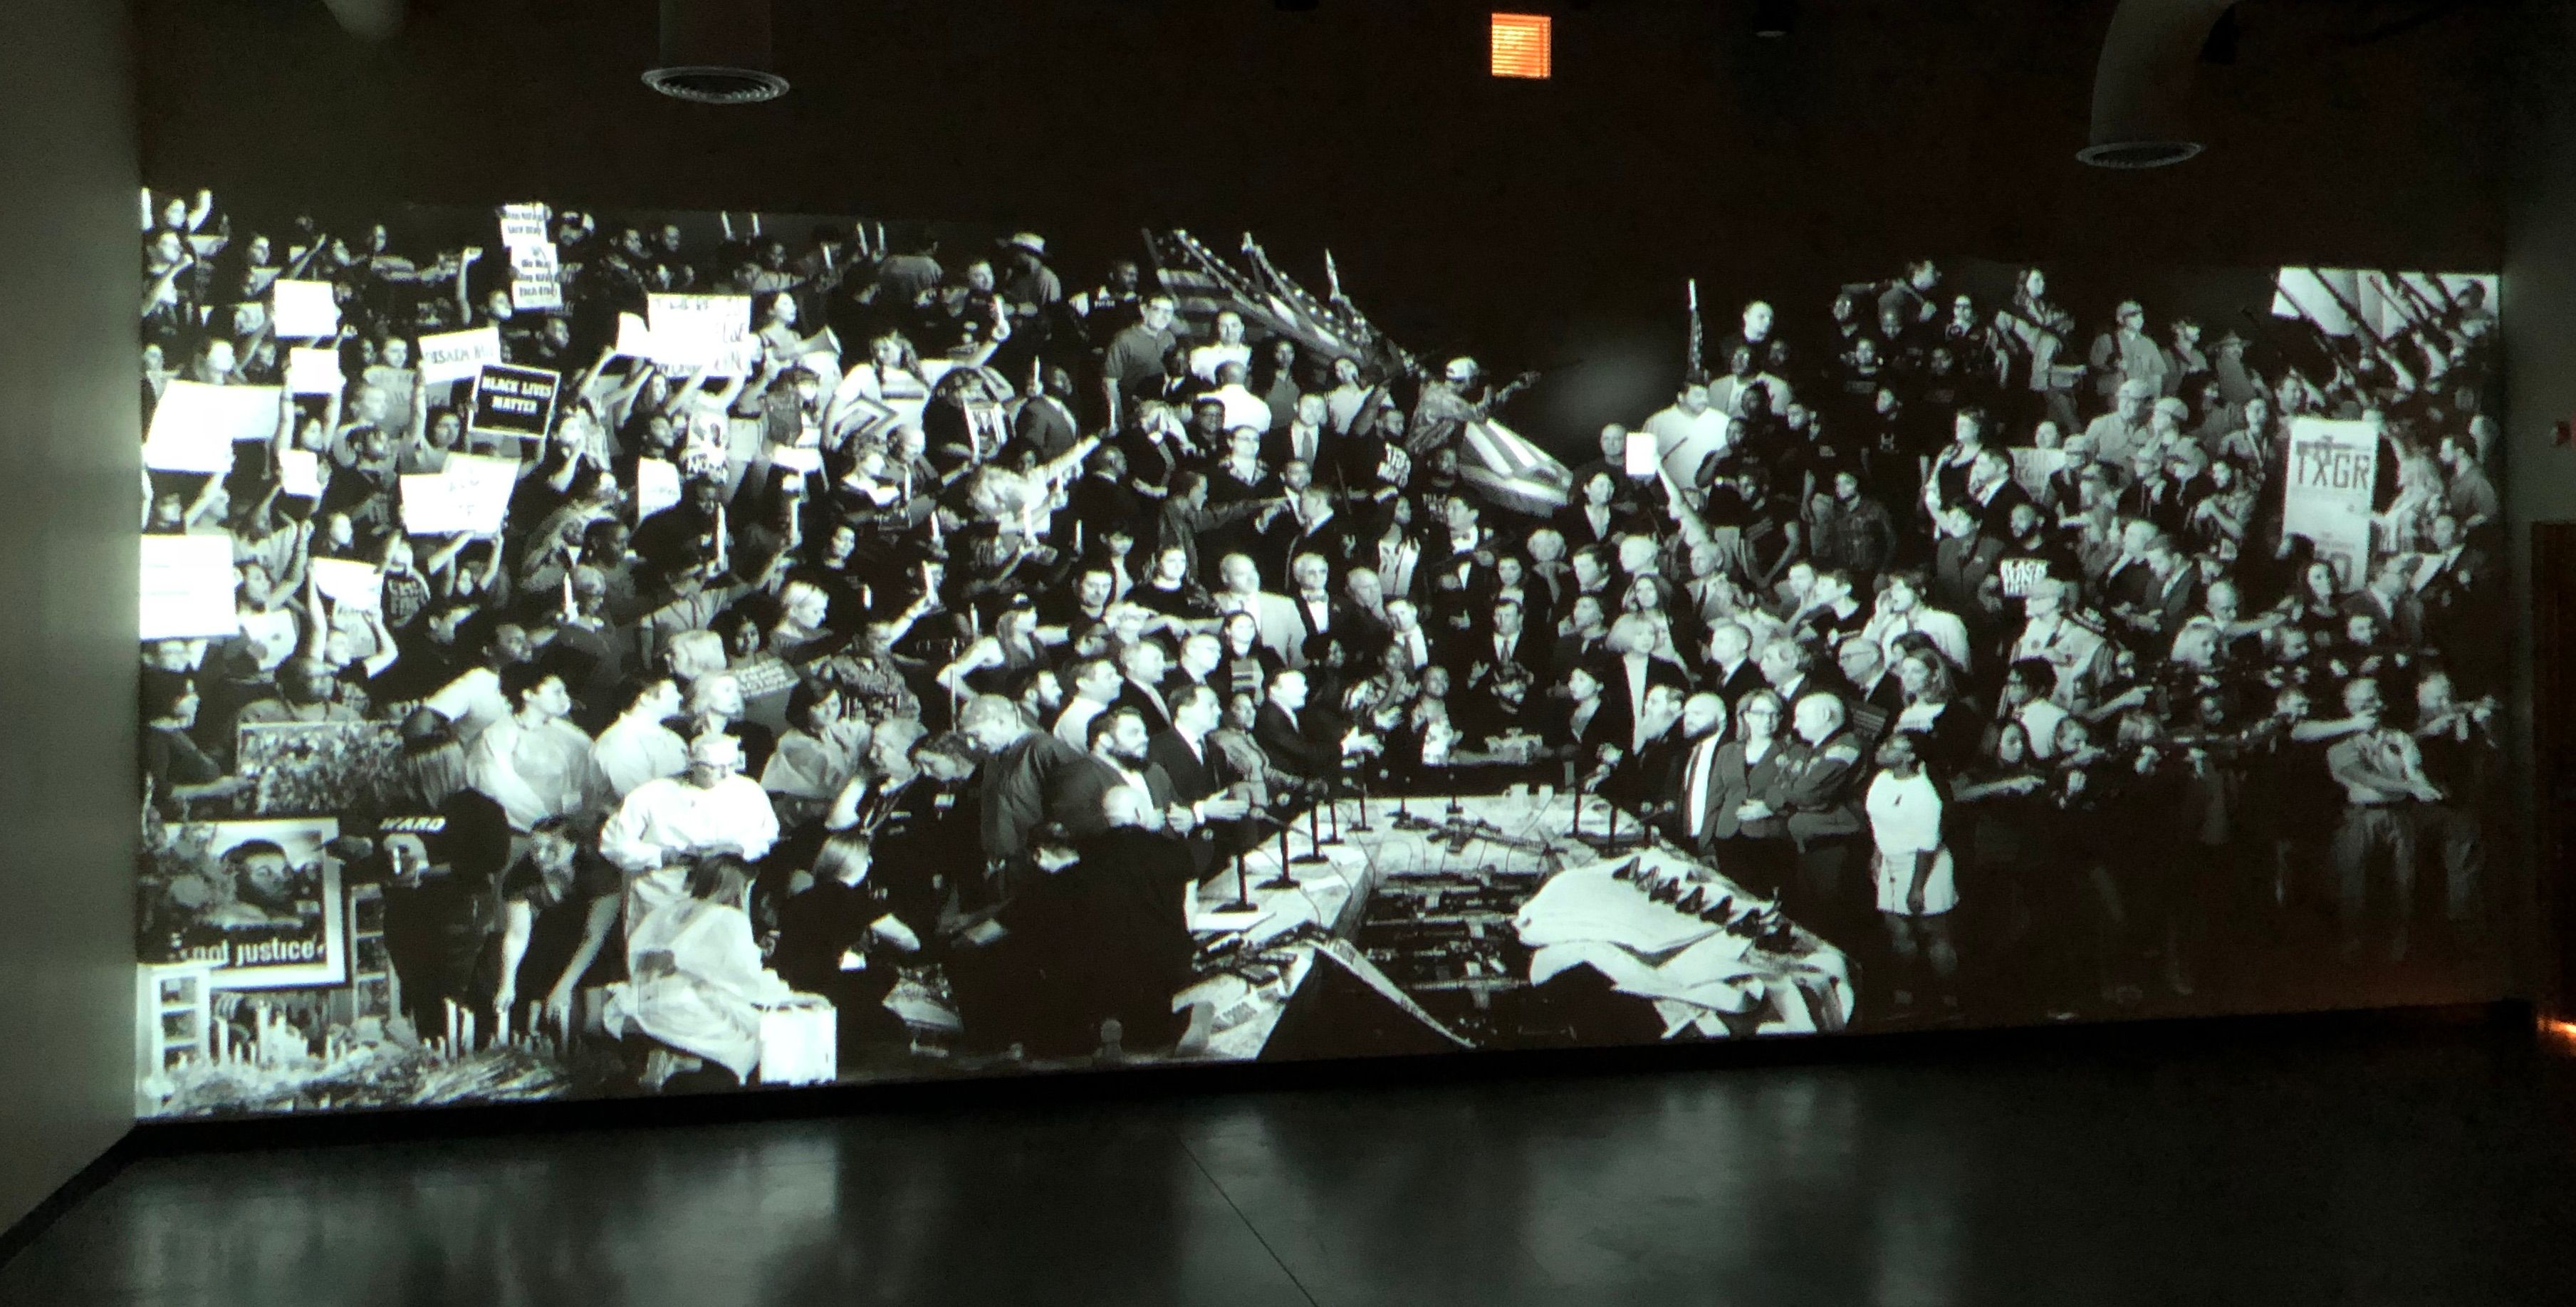 Large Projection Screen Display at Art Exhibit